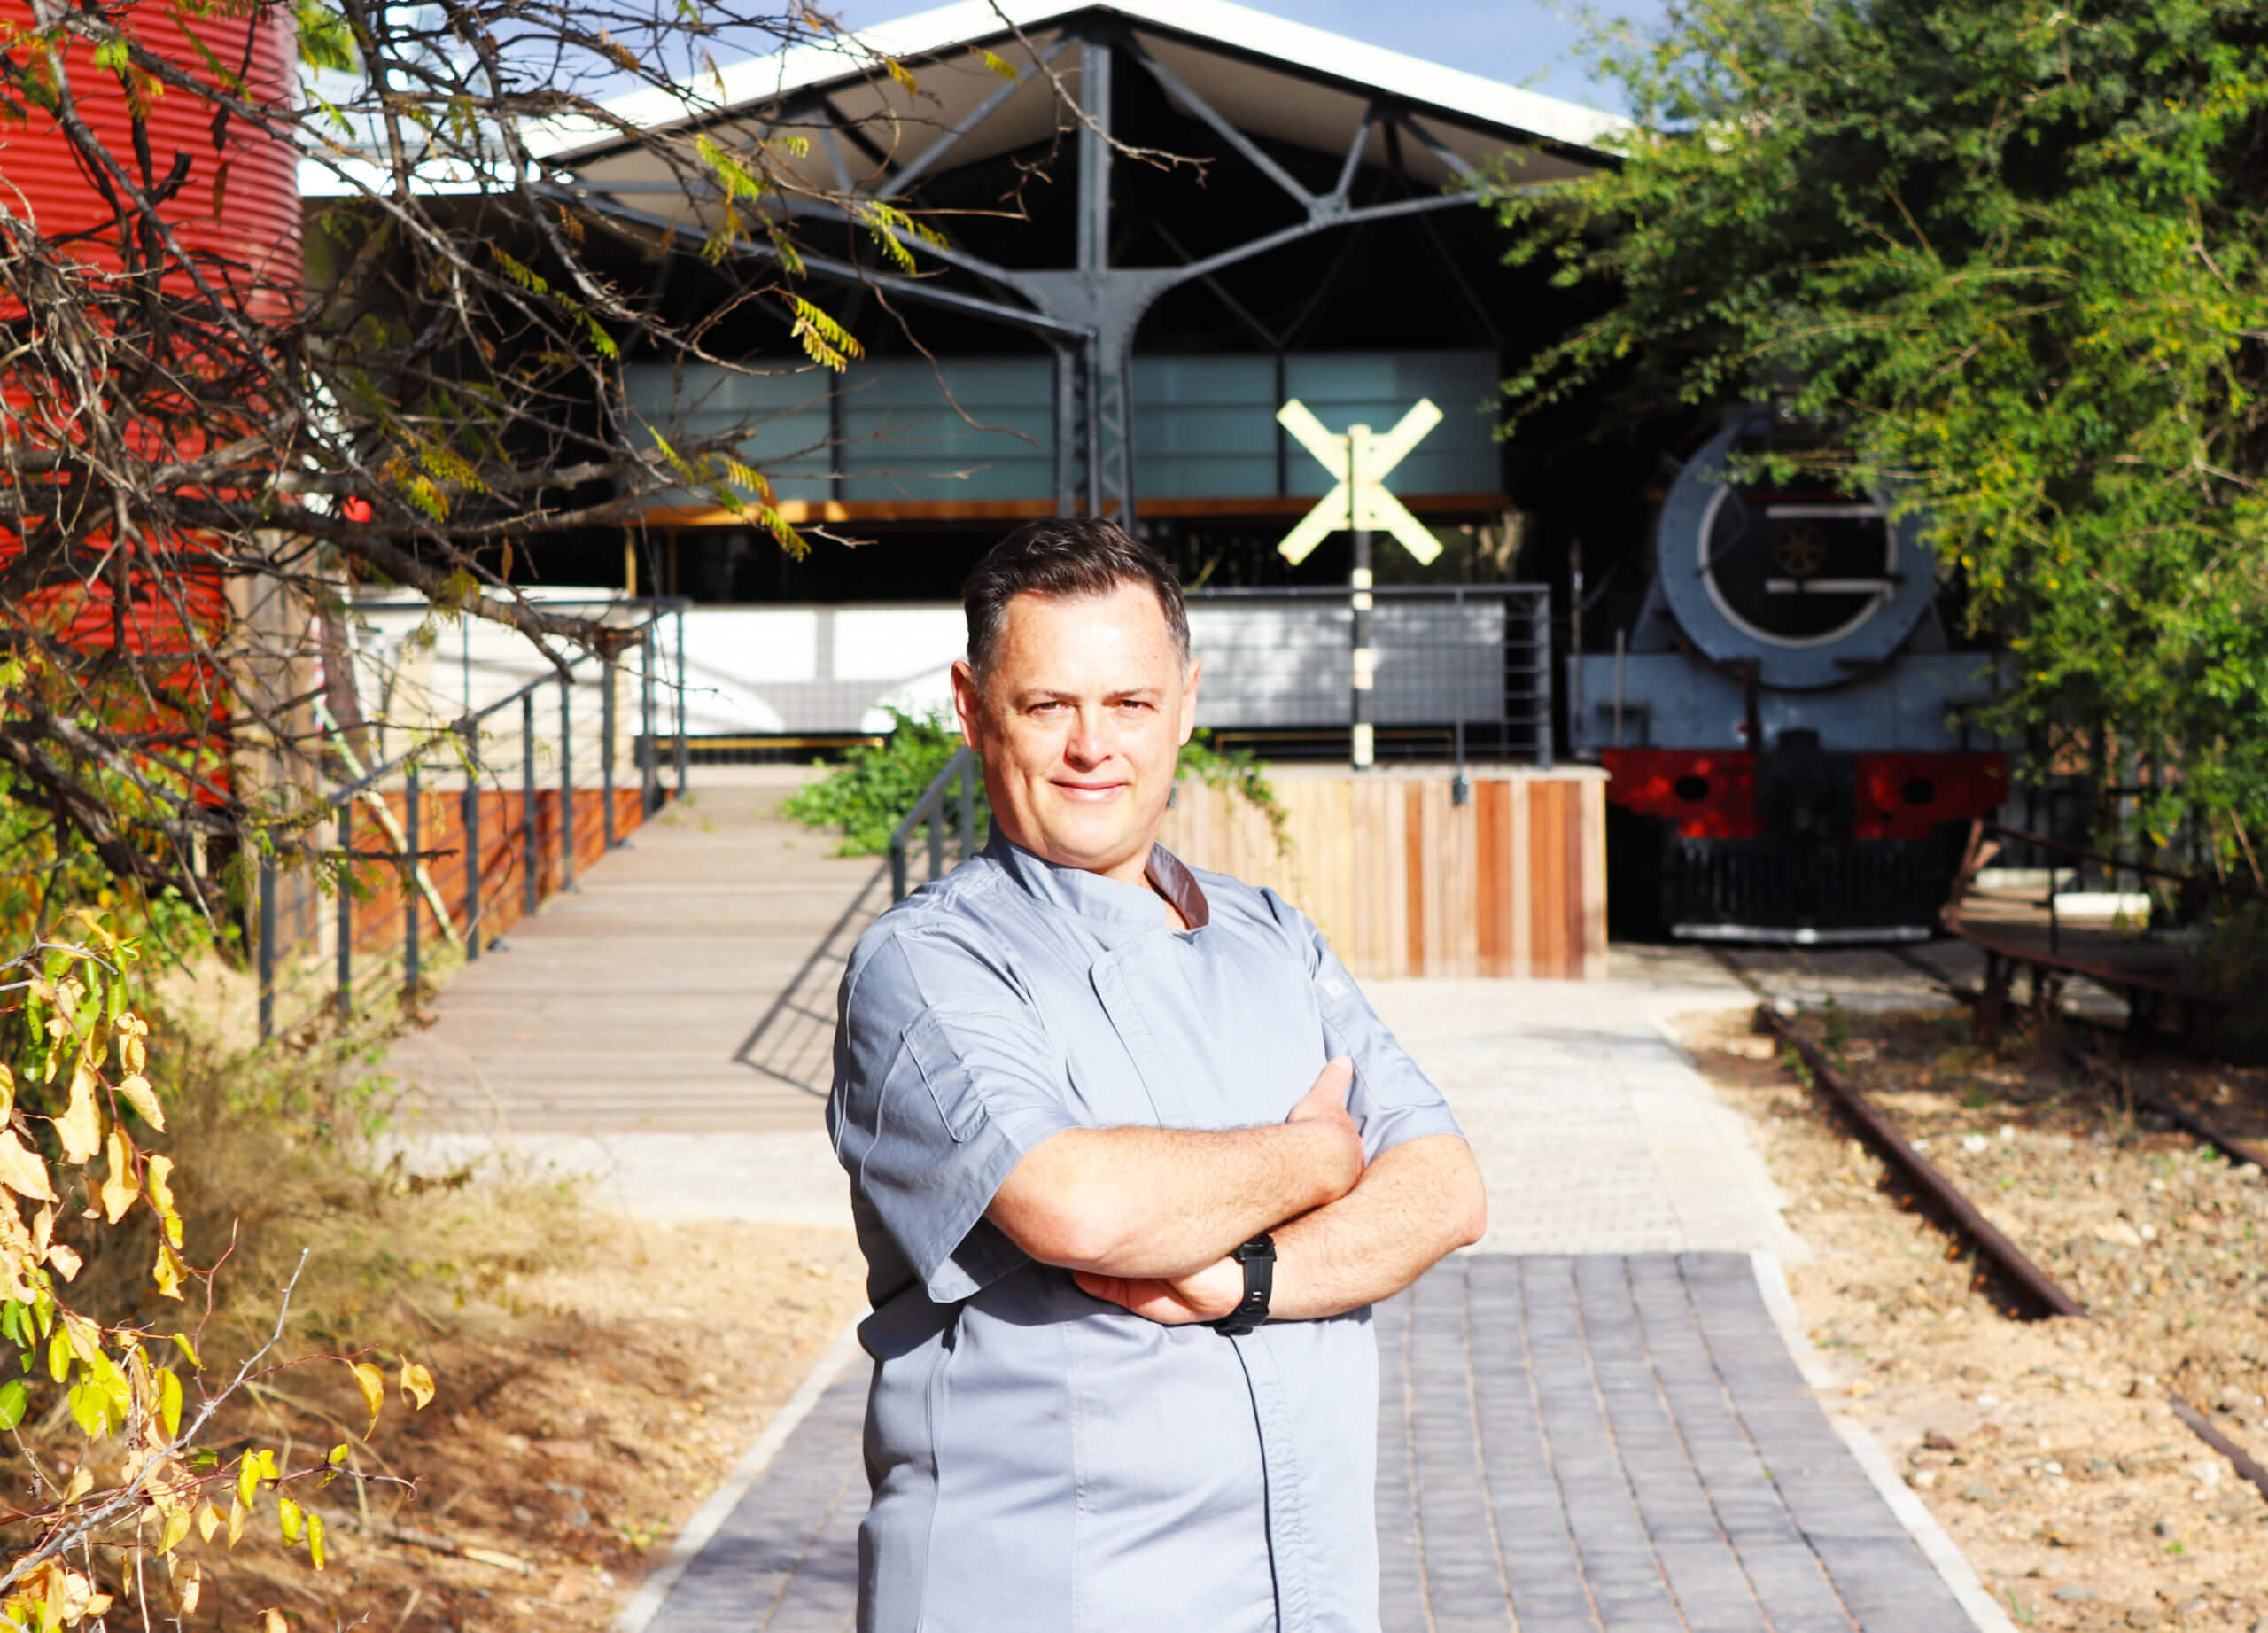 SA Celebrity Chef Brings A World Of Flavour To Kruger Station